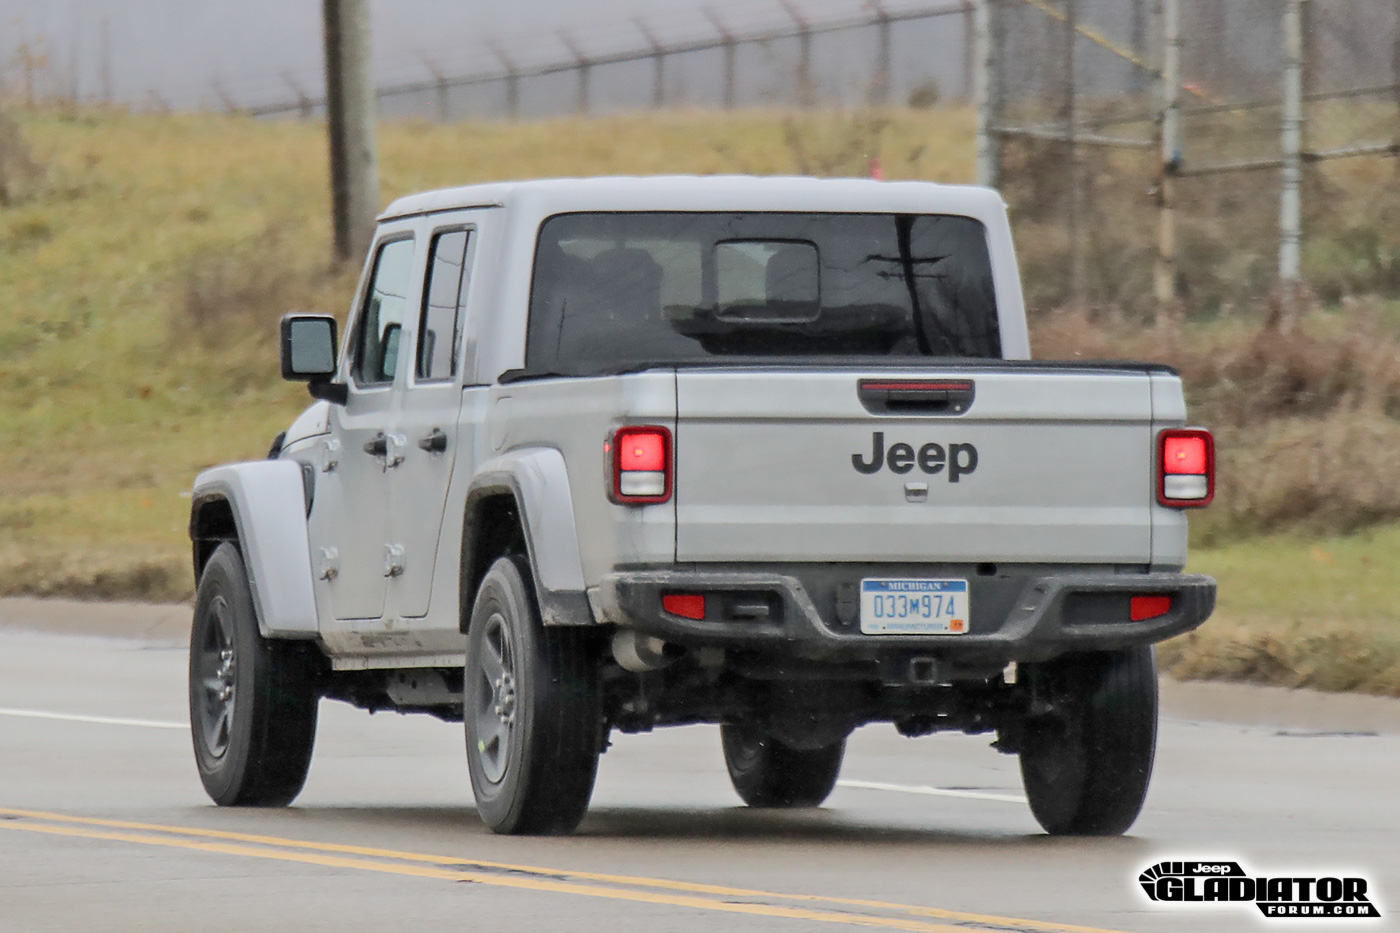 2020-Jeep-Gladiator-JT-Pickup-Truck-Spotted-Undisguised-17.jpg